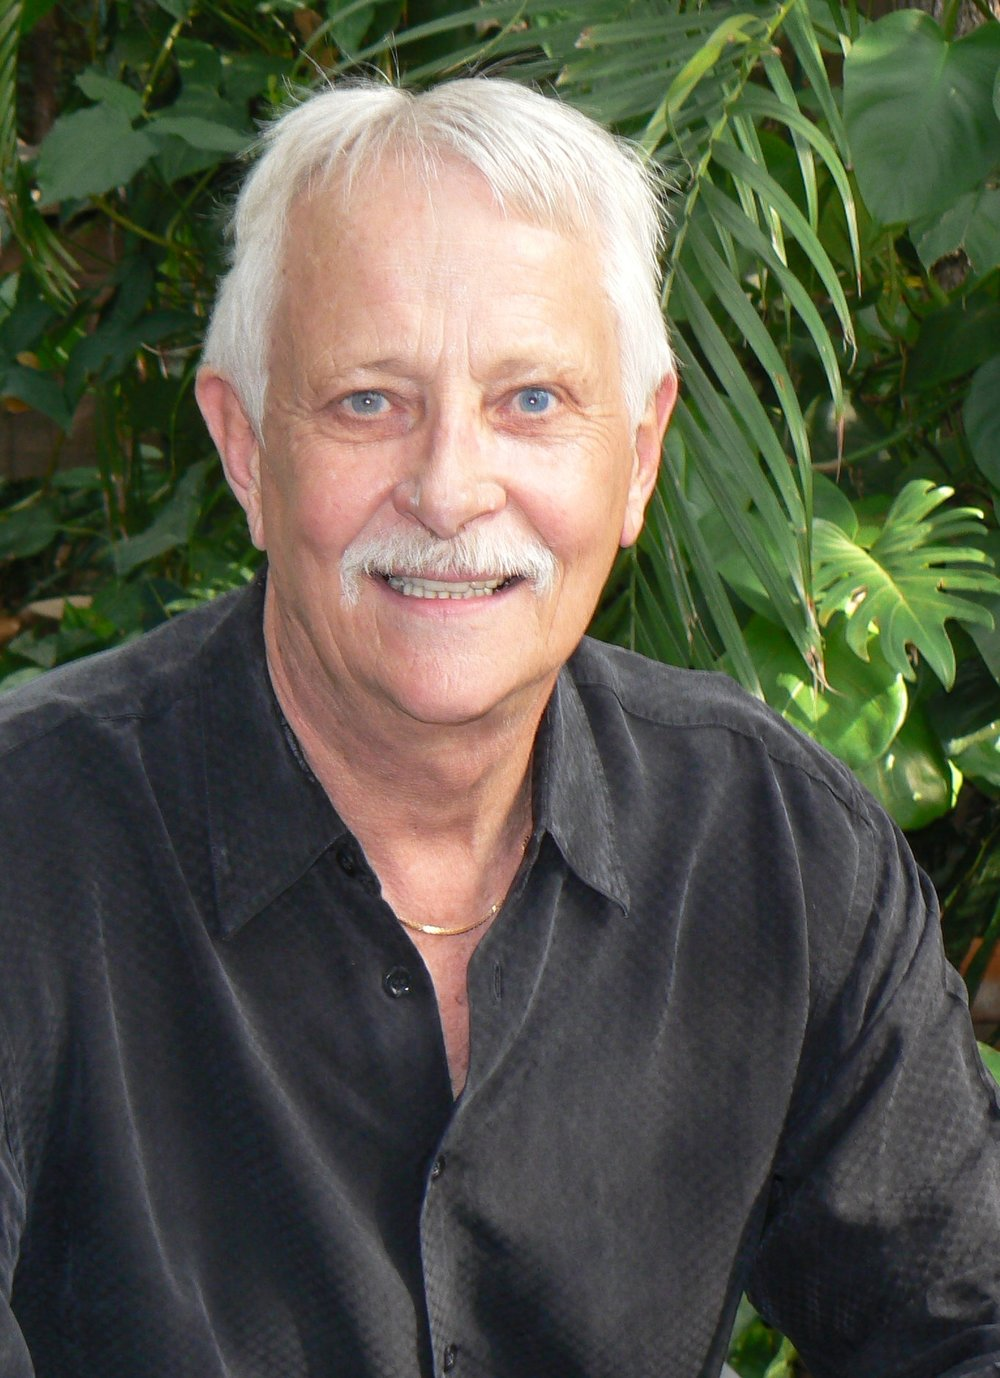 Wayne Duehn Photo.JPG